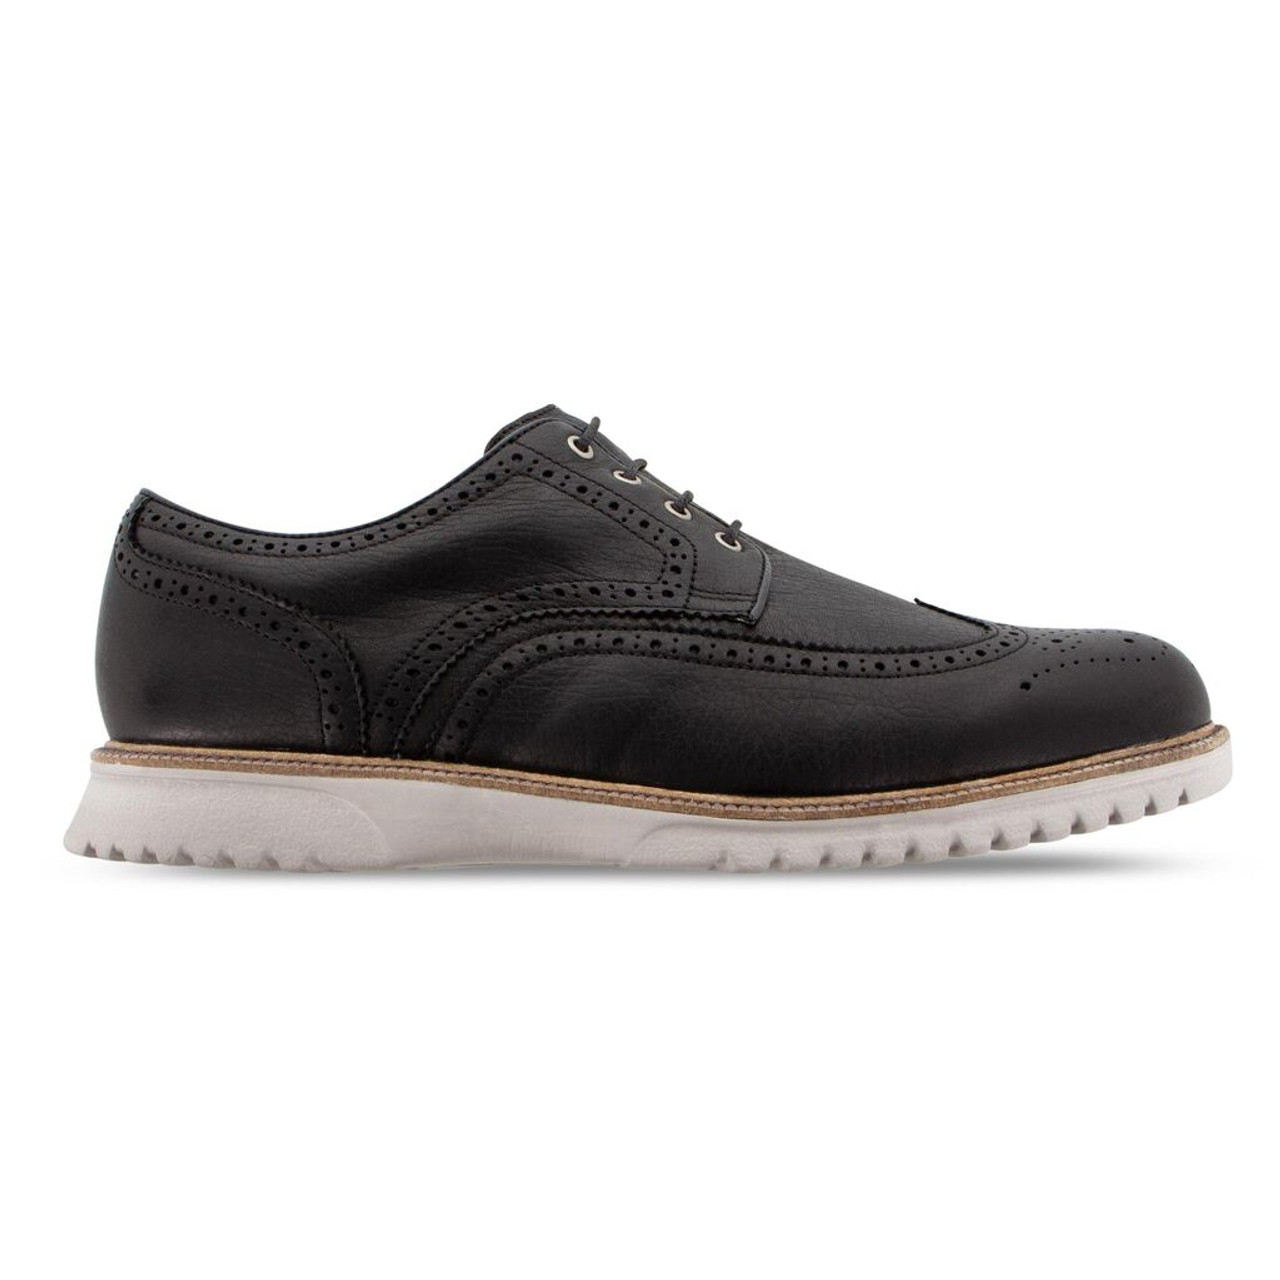 FootJoy Club Casuals Wing Tip Golf Shoes - Black (79059)